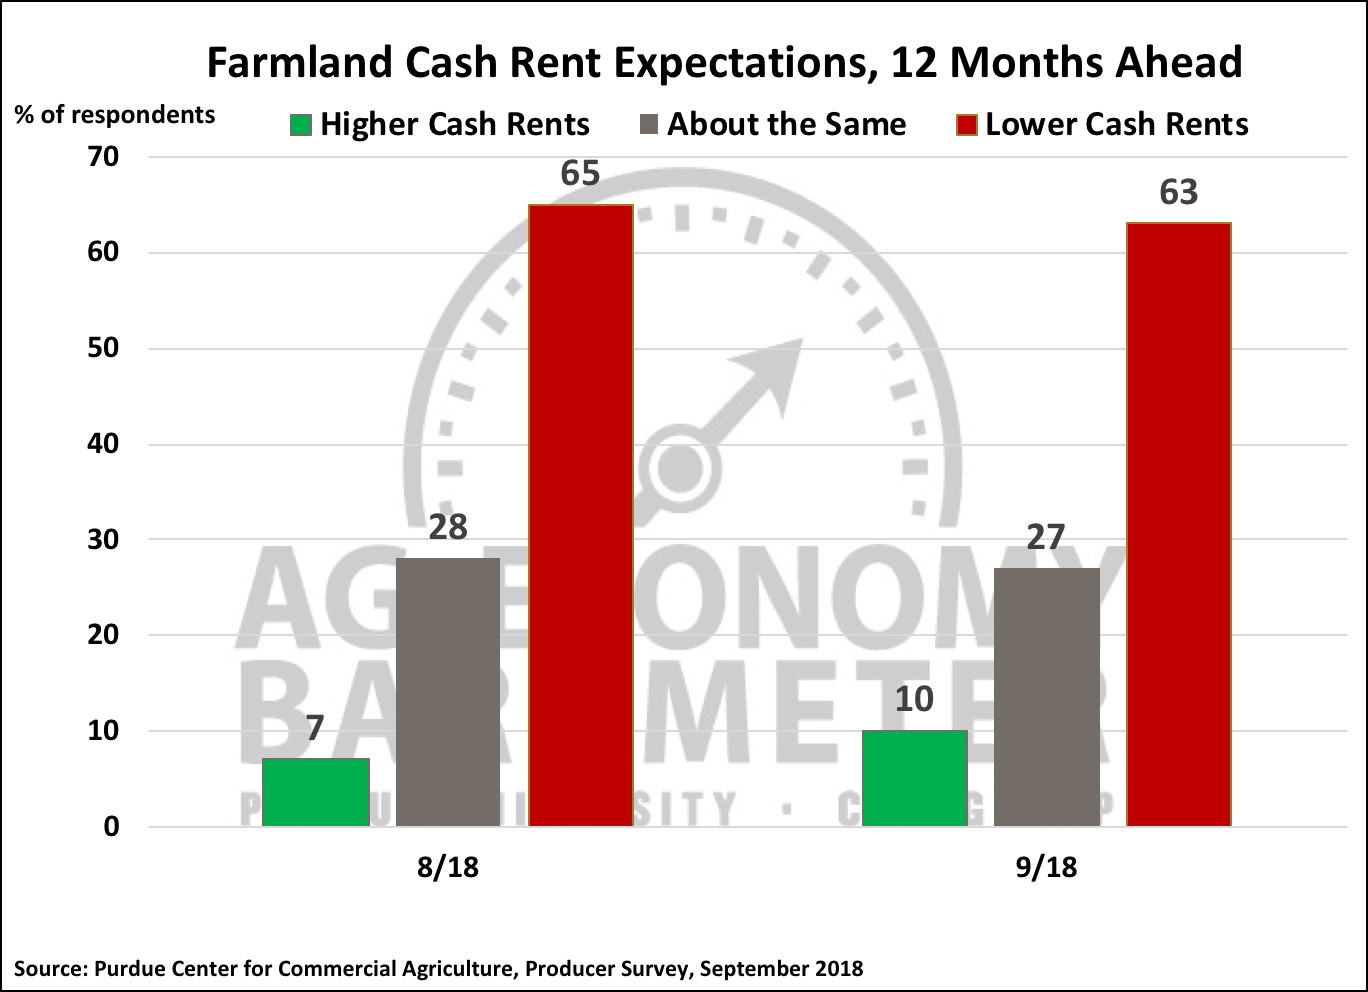 Figure 6. Farmland cash rent expectations, 12 months ahead, August and September 2018.